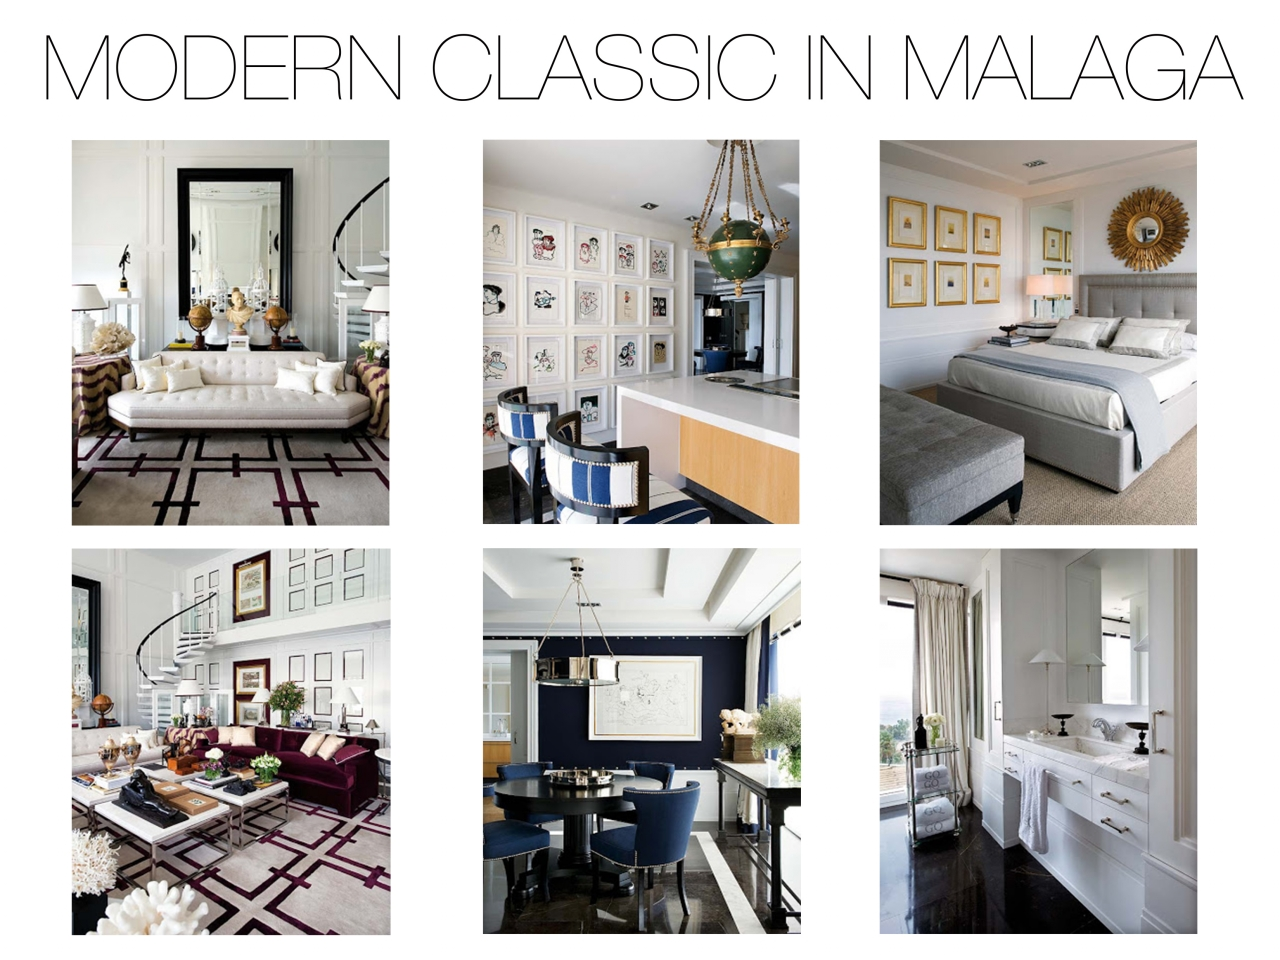 Modern classic interior design classic modern luxury for Modern classic home design